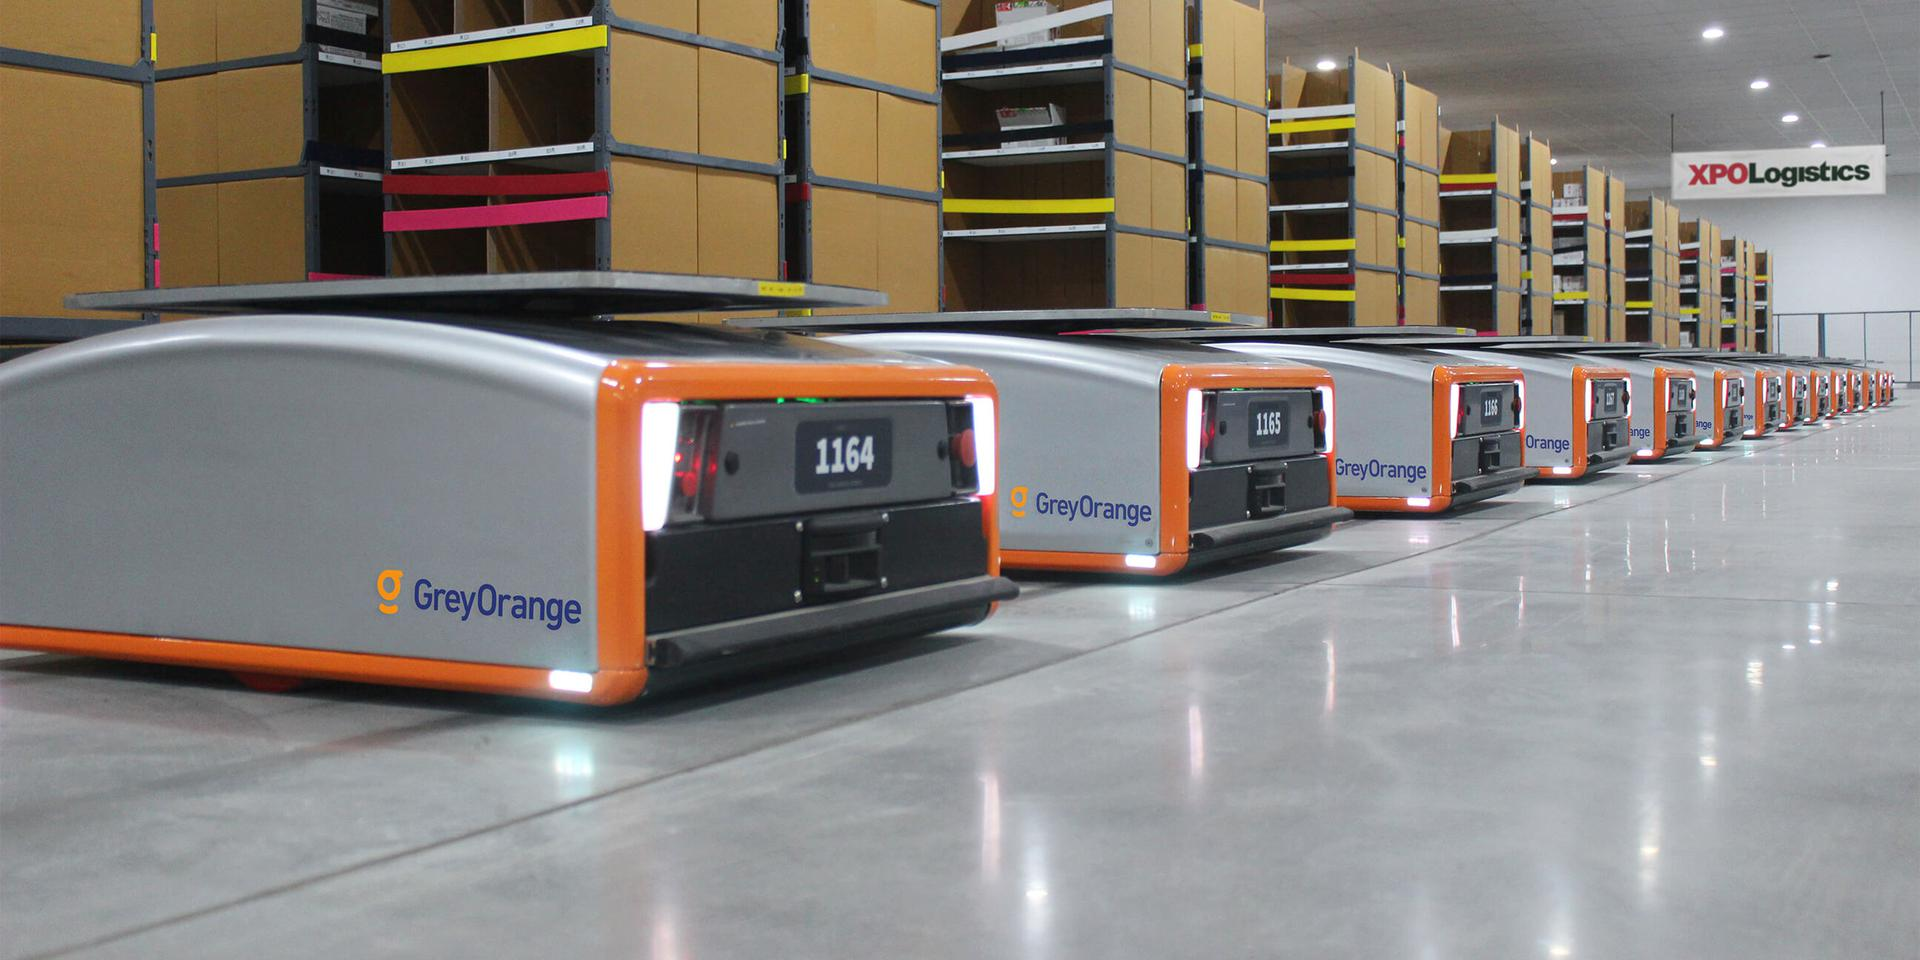 XPO GreyOrange robots lined up in warehouse